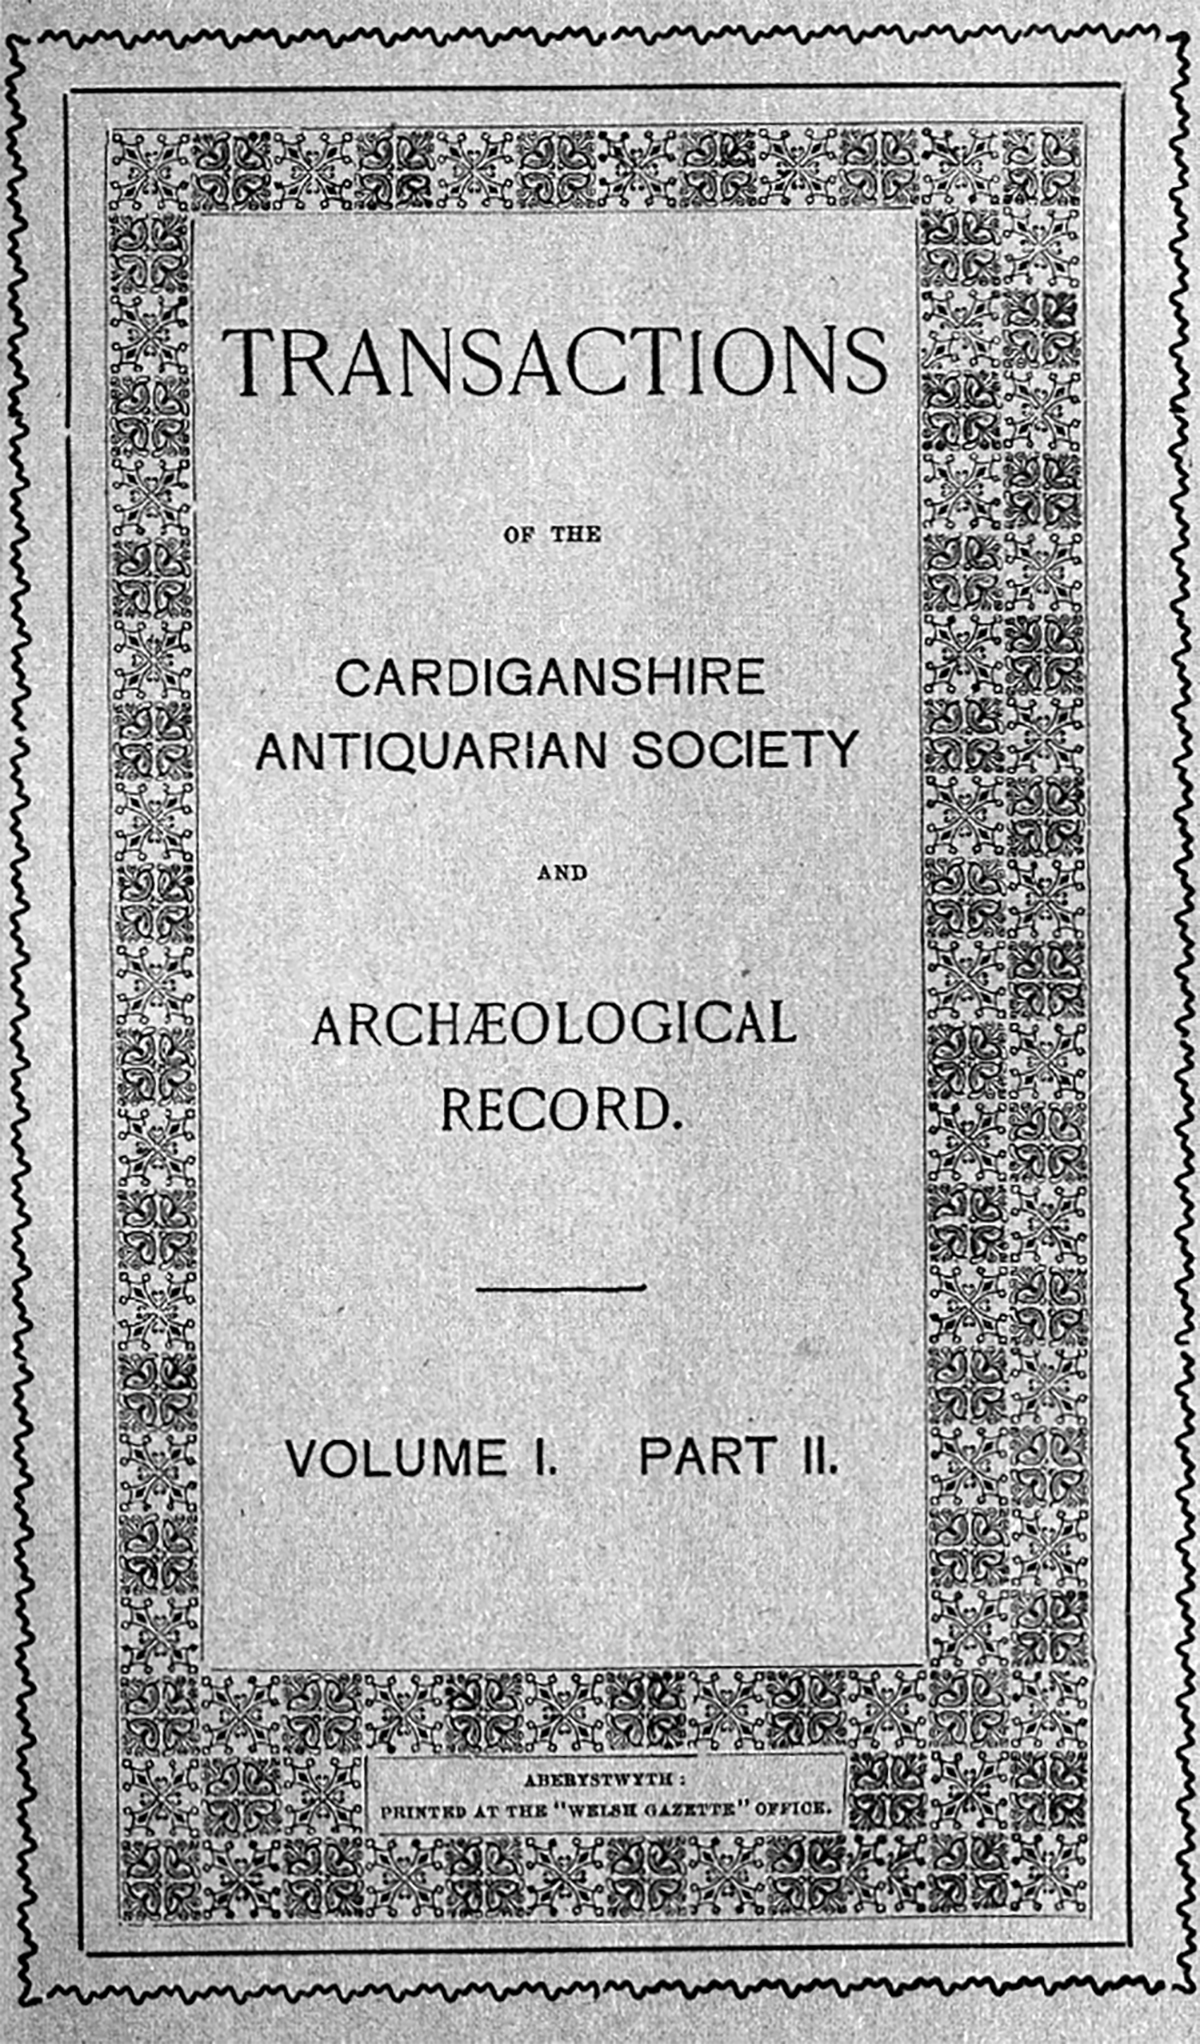 Transactions of the Cardiganshire Antiquarian Society and archaeological Record - Volume 1 Part 2